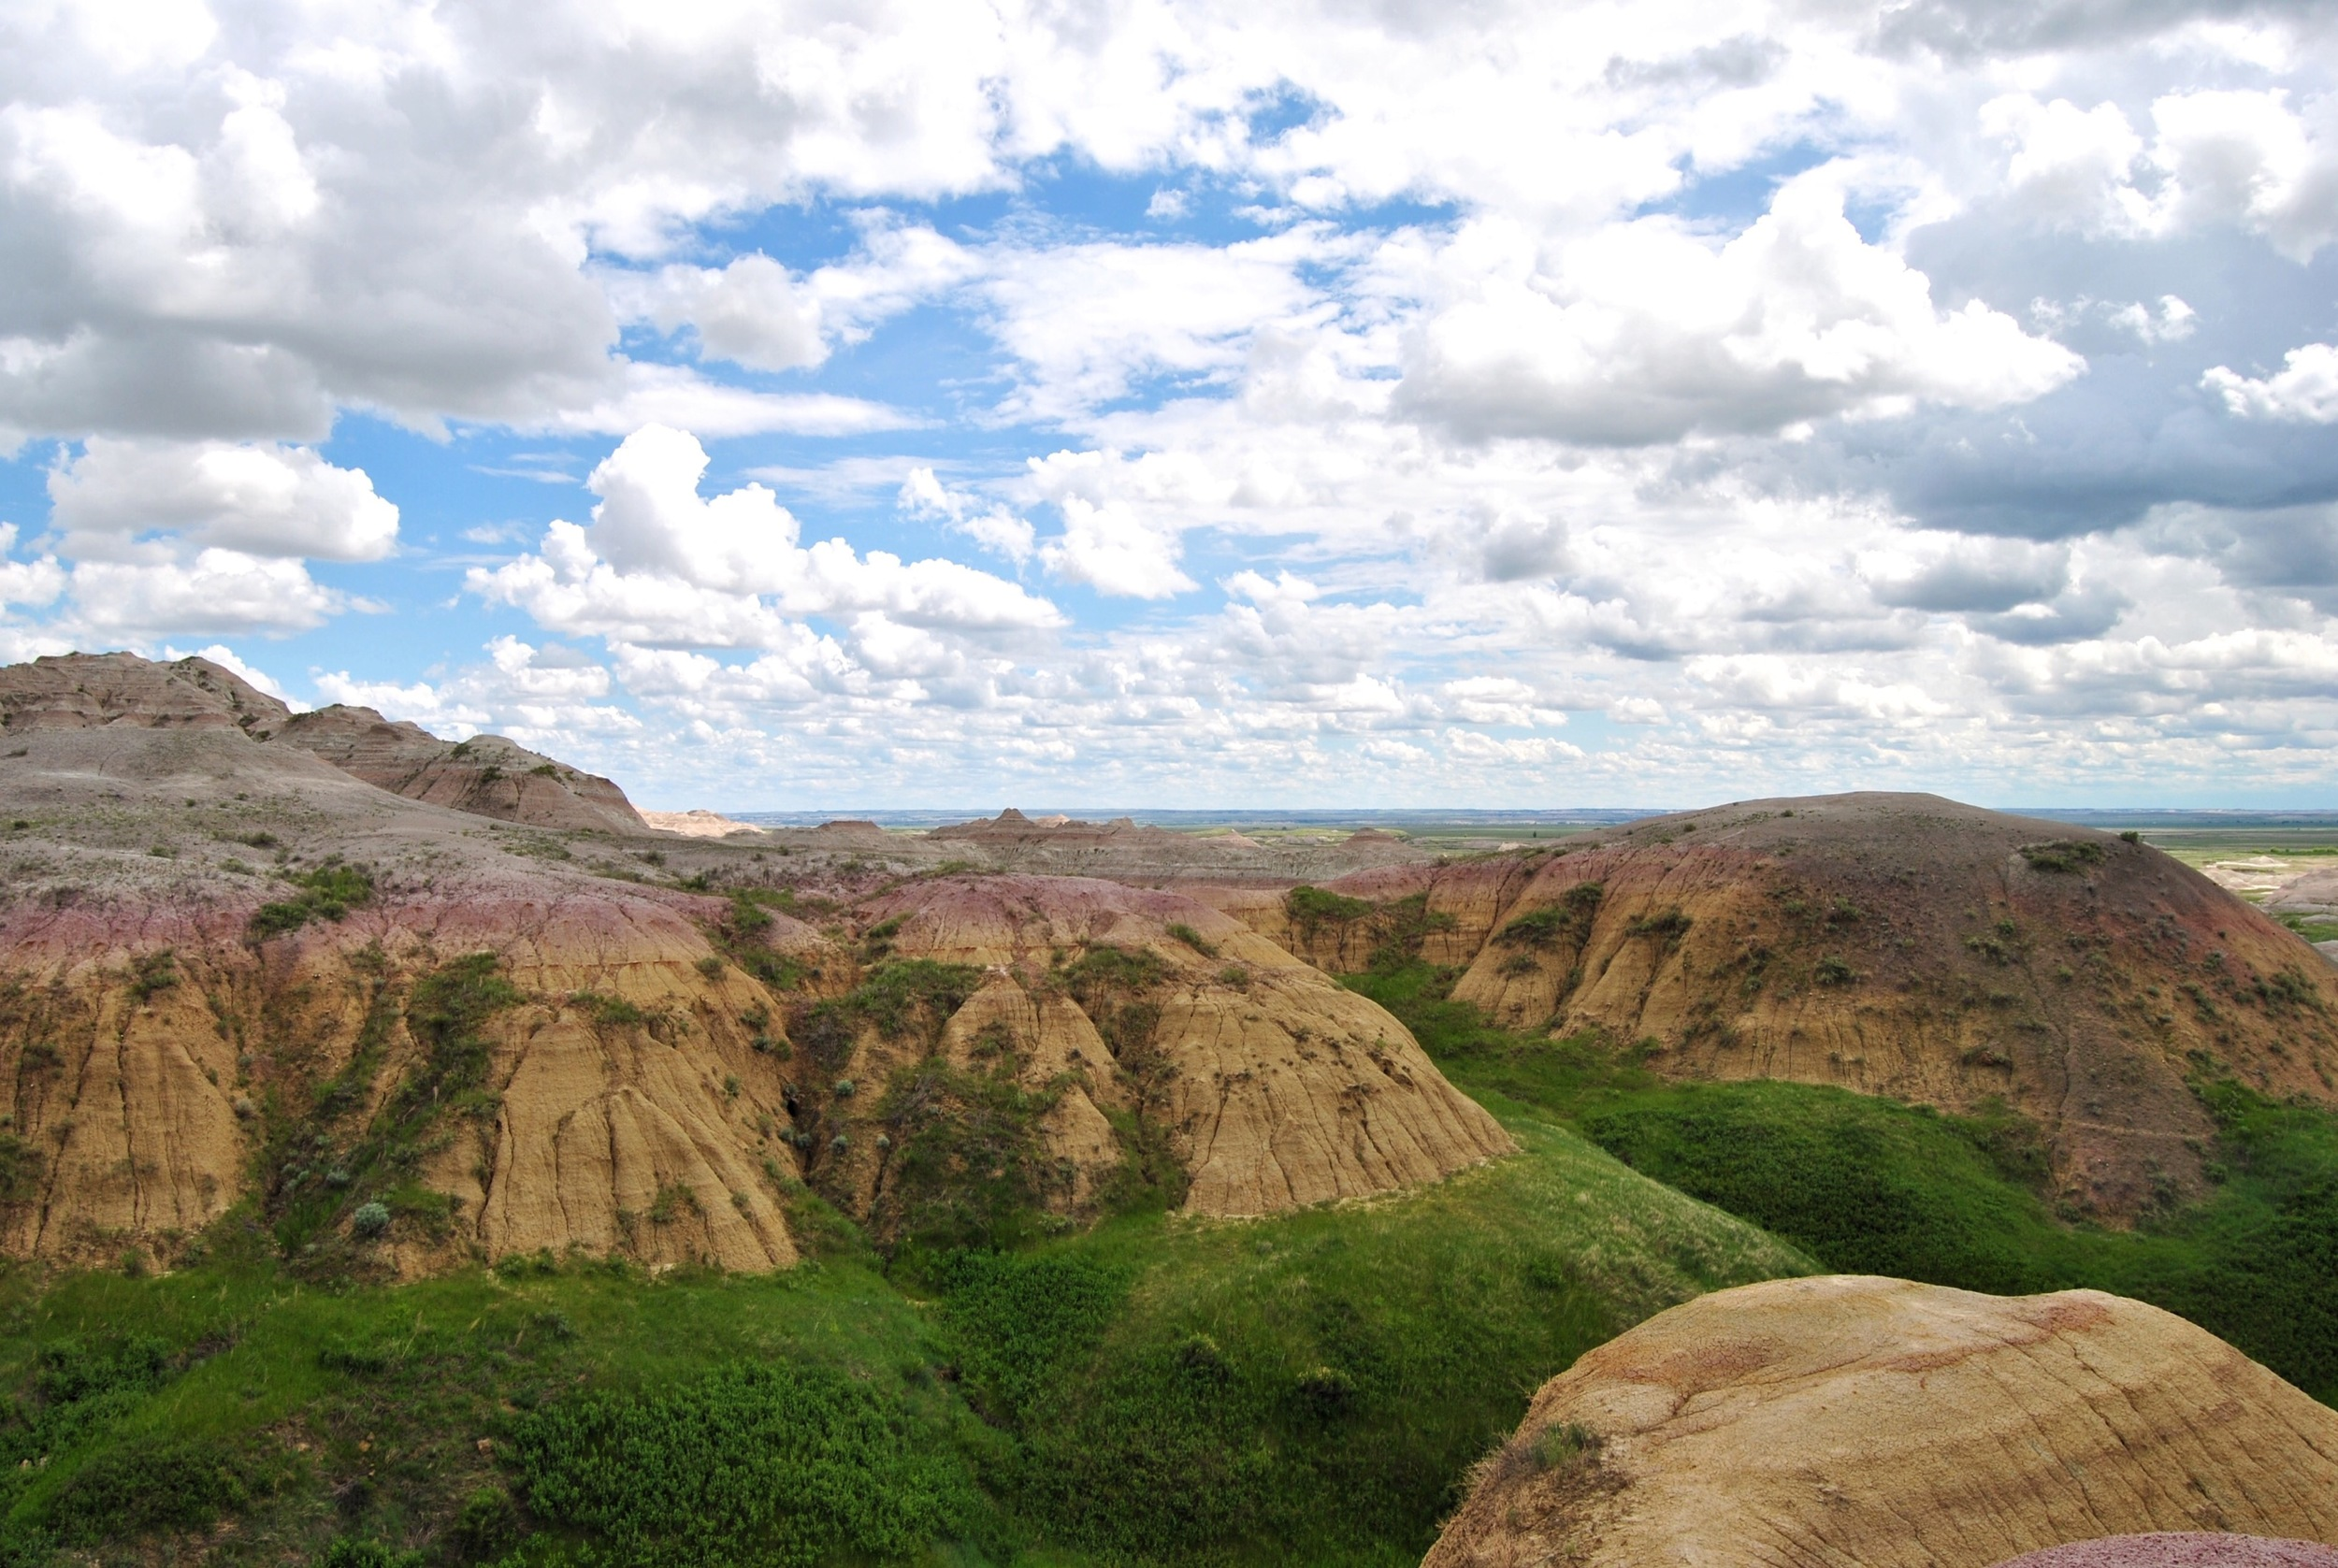 The Yellow Mounds were formed from being an ancient tropical rainforest a few years ago. They were named because they were yellow.